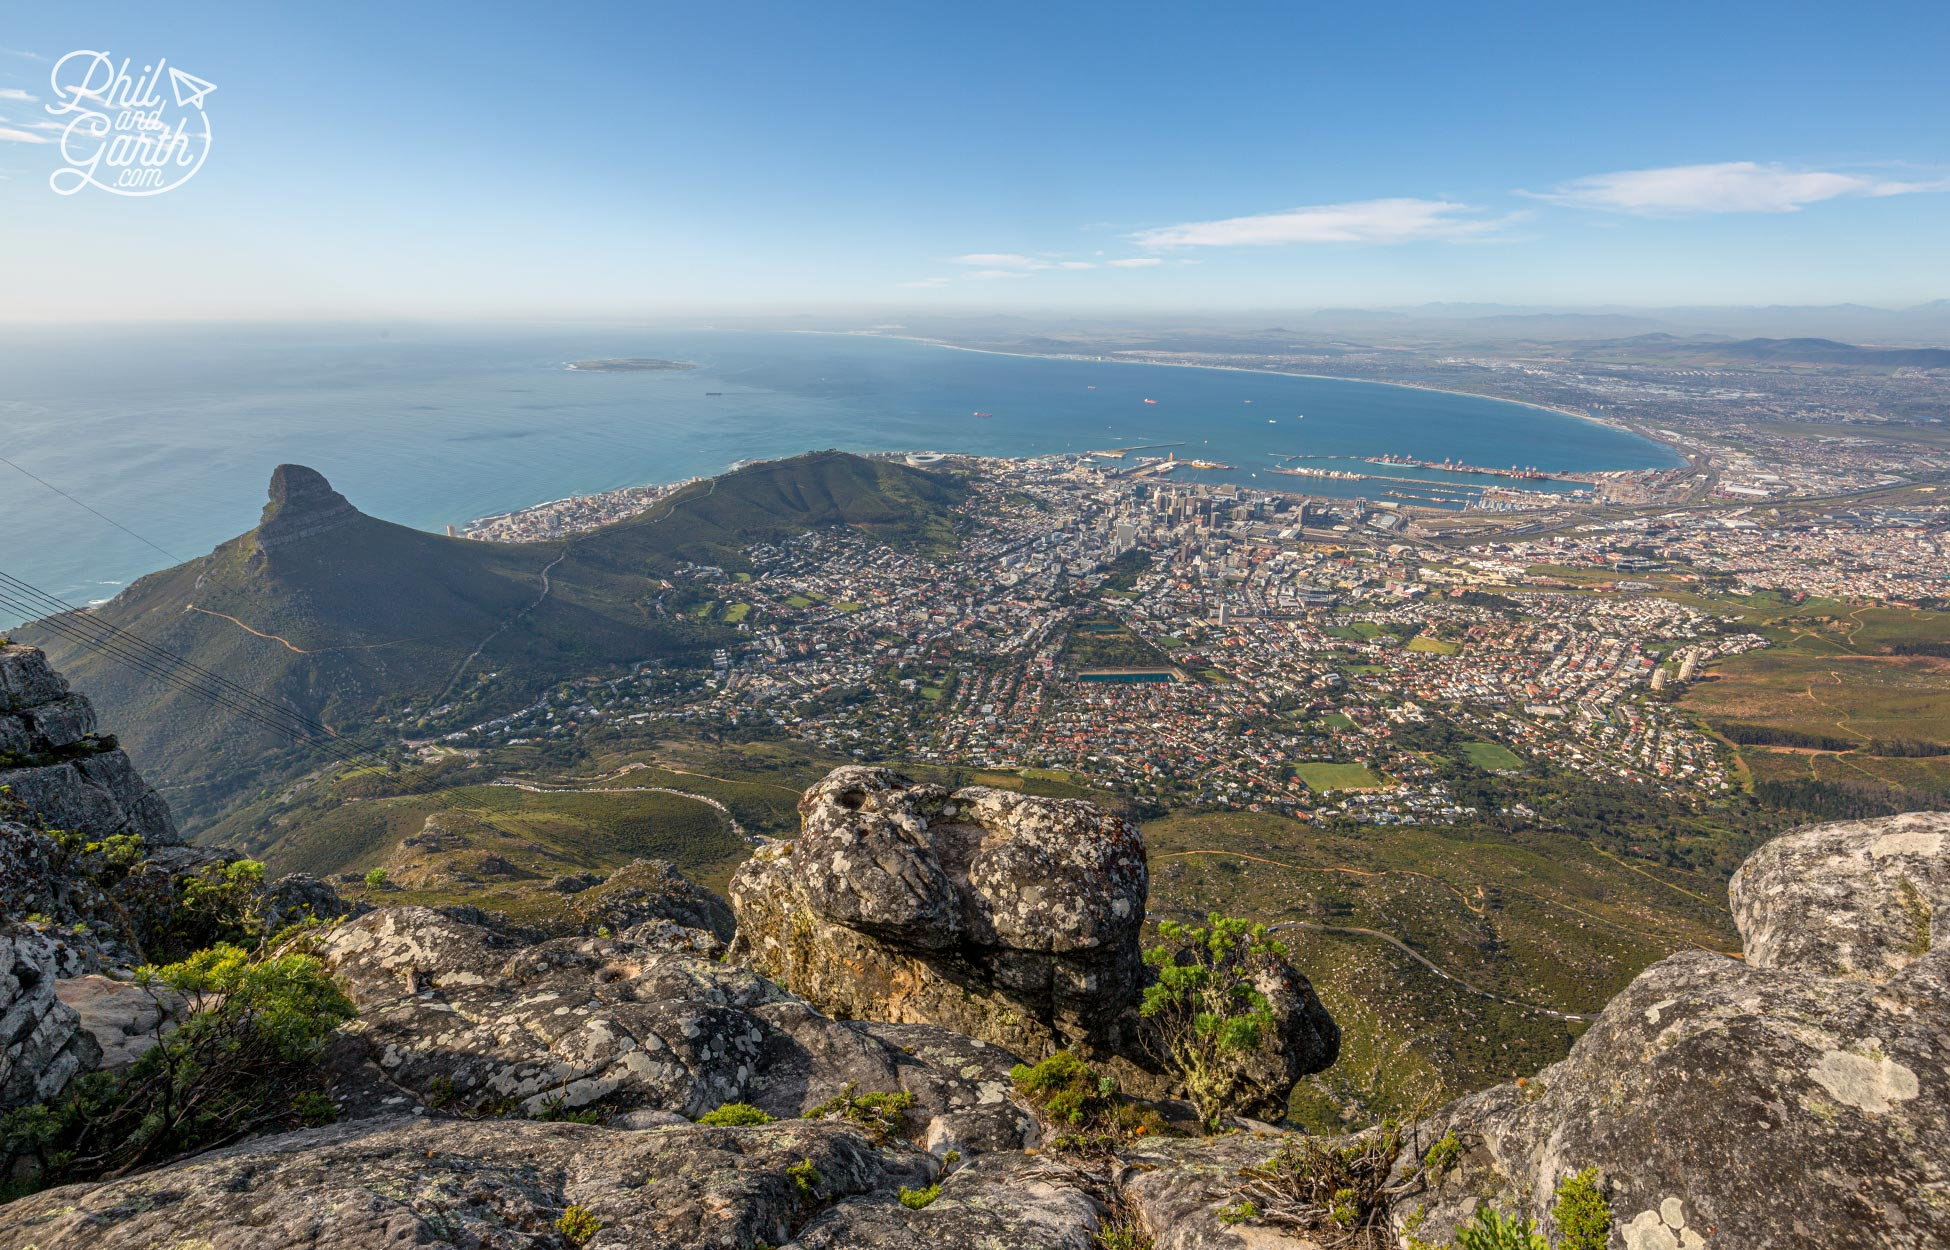 The impressive view of Cape Town from the top of Table Mountain